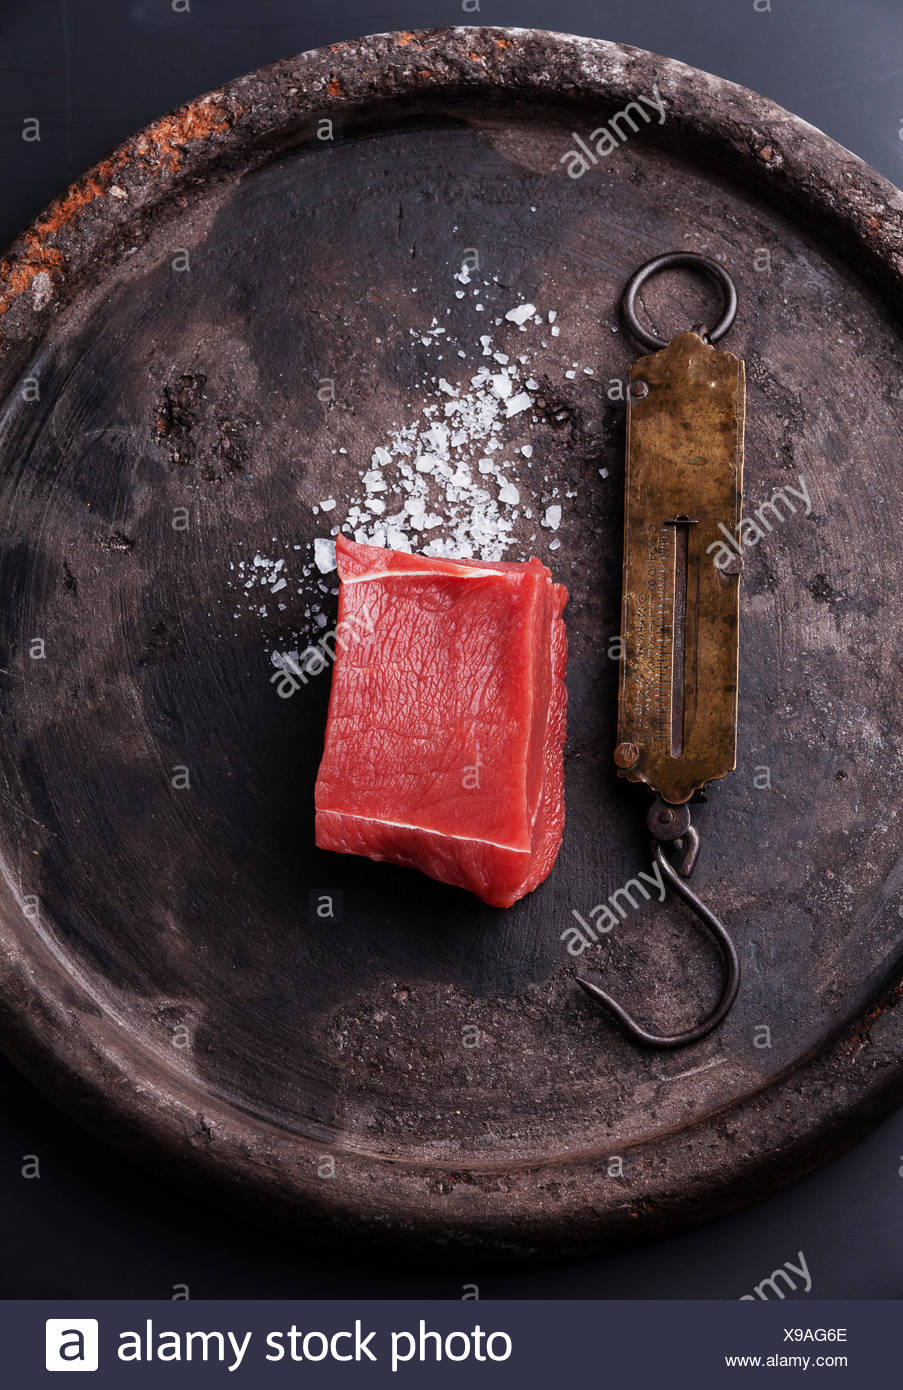 Raw fresh meat fillet and vintage steelyard on dark stone background - Stock Image